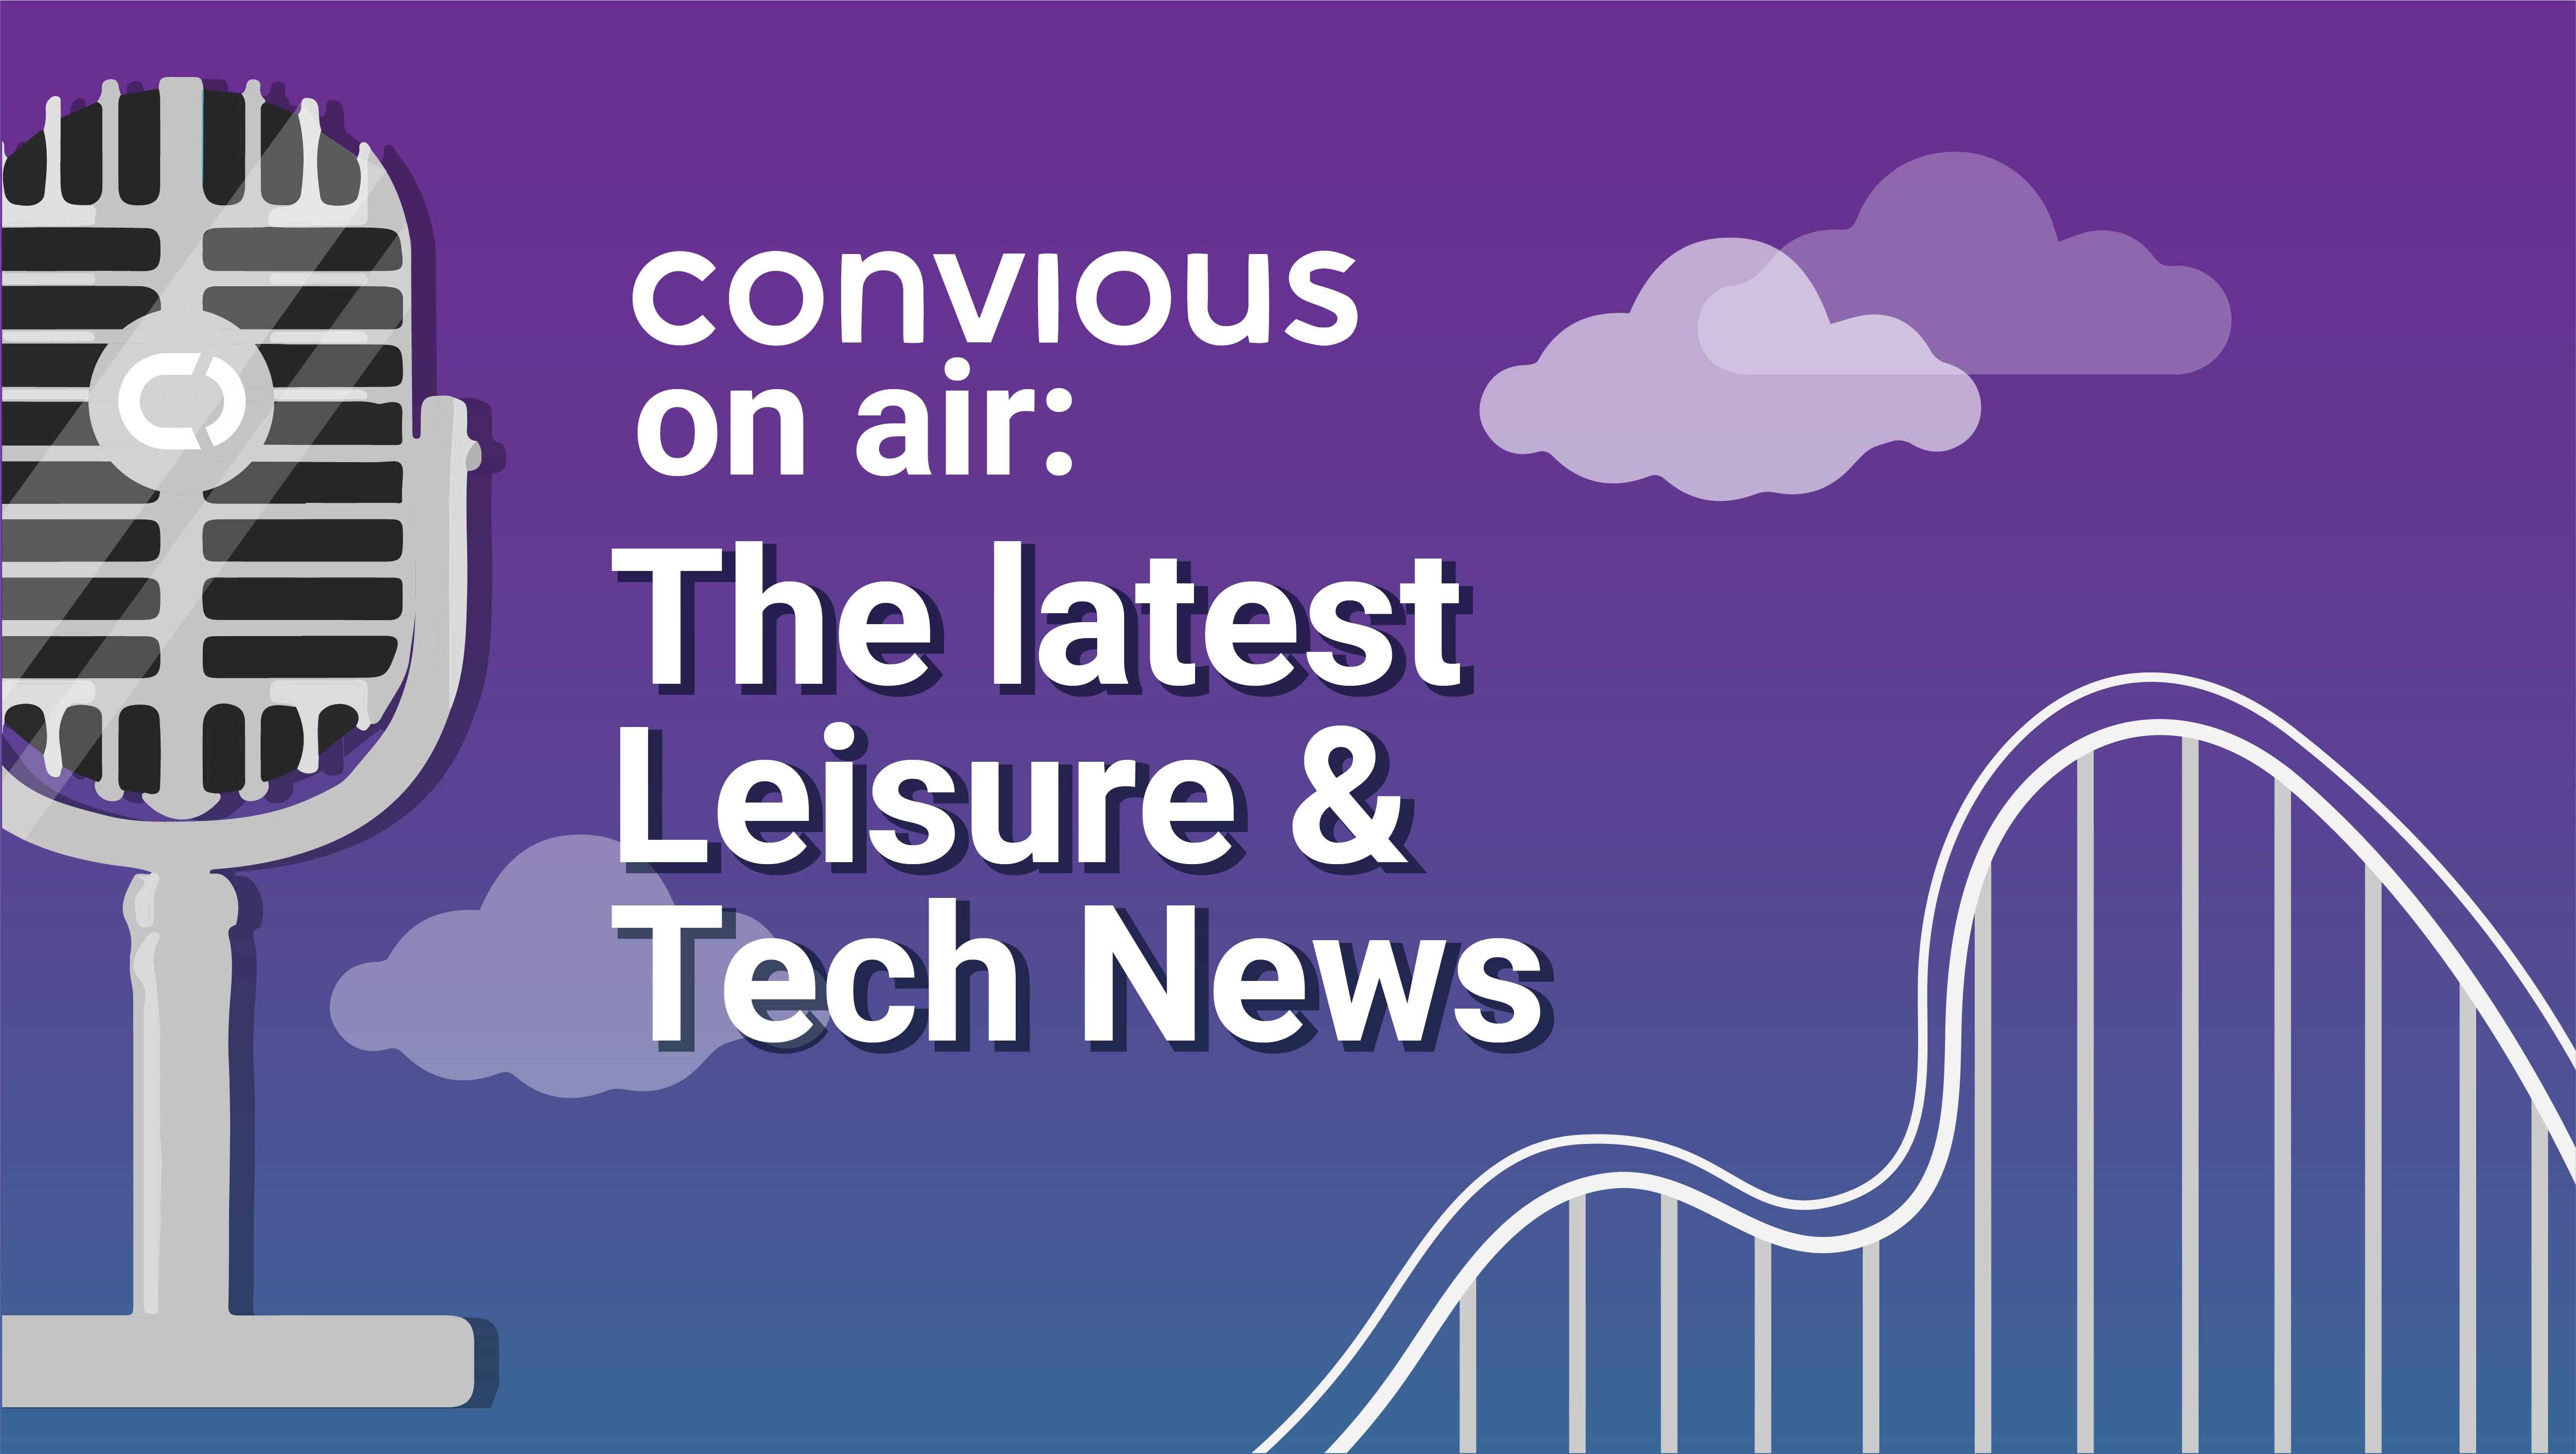 Convious on air with its second episode - Market voices: What leisure venues think, do & say